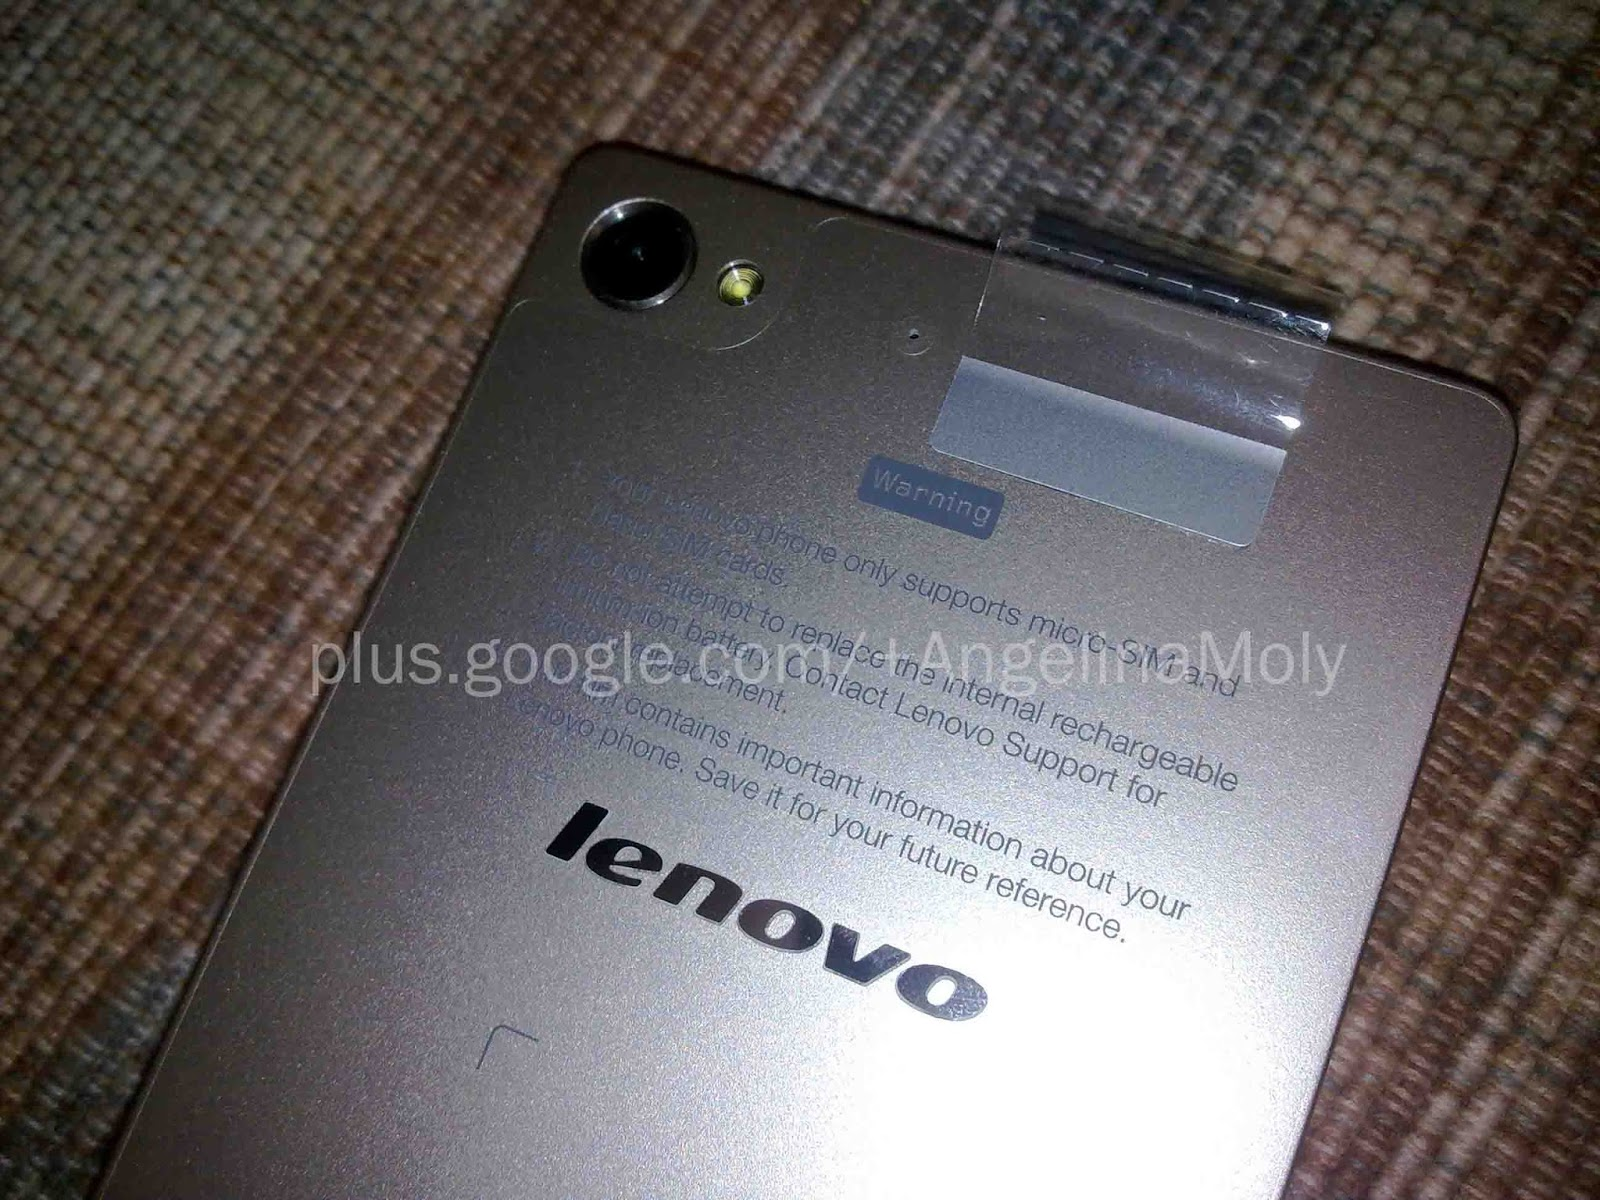 Healthy And Wealthy Know How Has No End Lenovo Vibe X2 4glte 32gb Gold Tech Specs With Good Poor Feedback